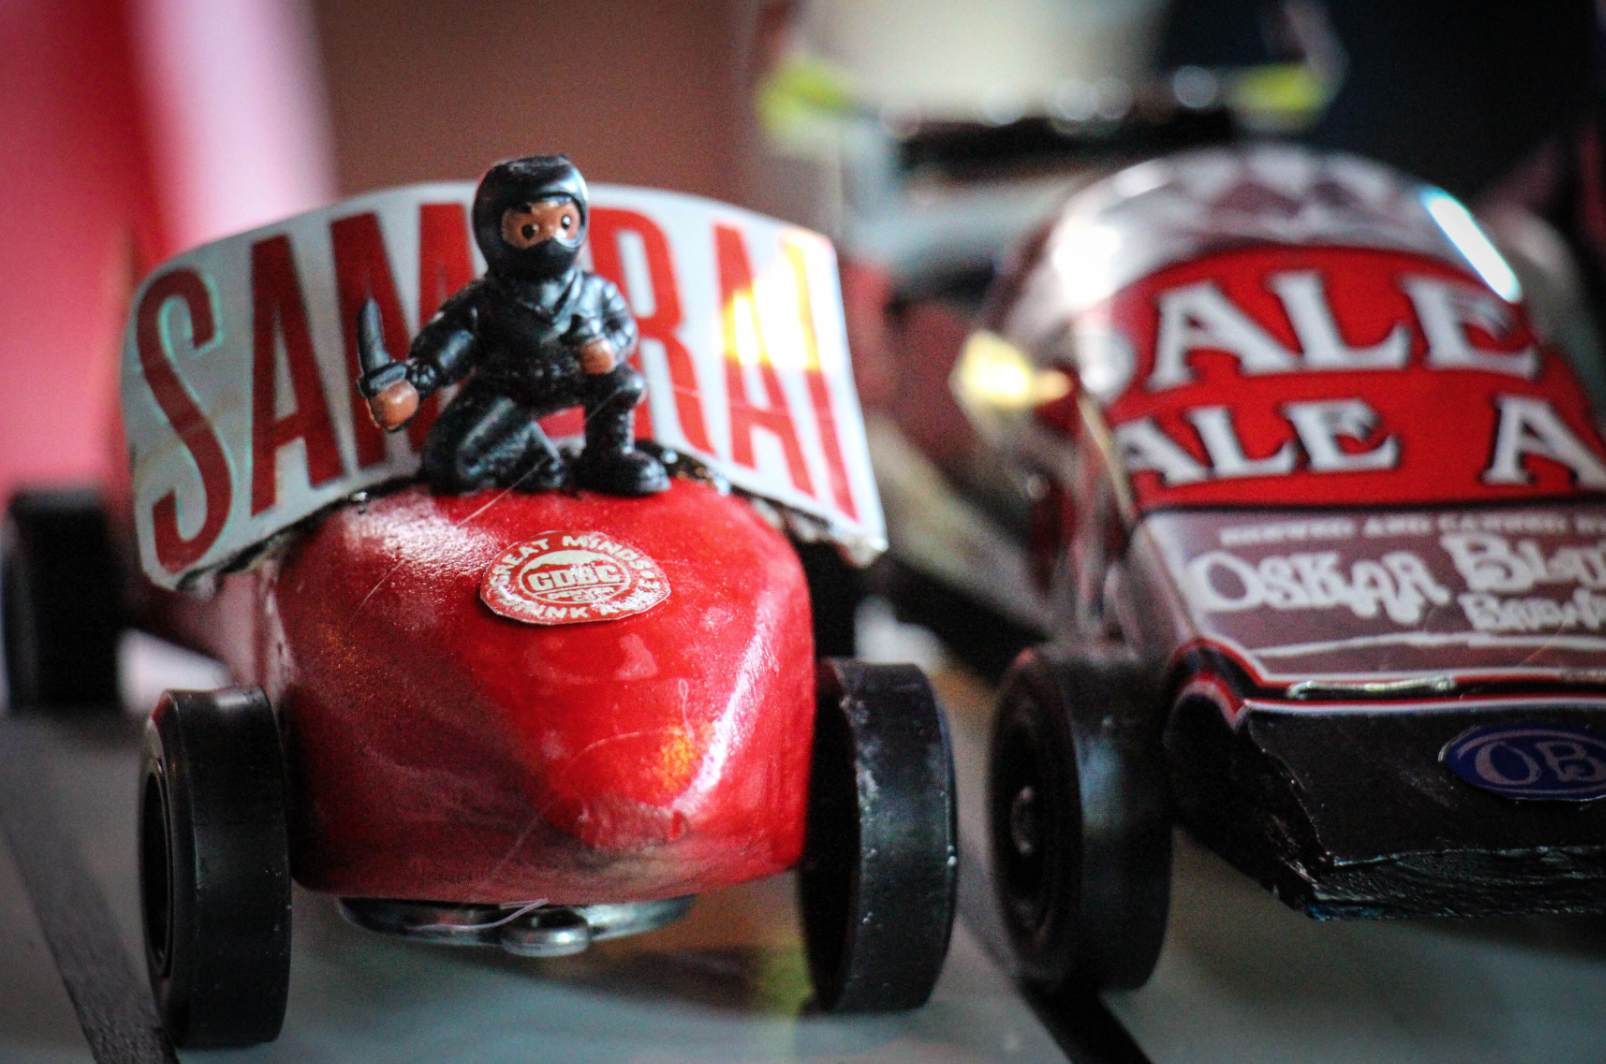 4th Annual Can-Wood Derby at Ale House